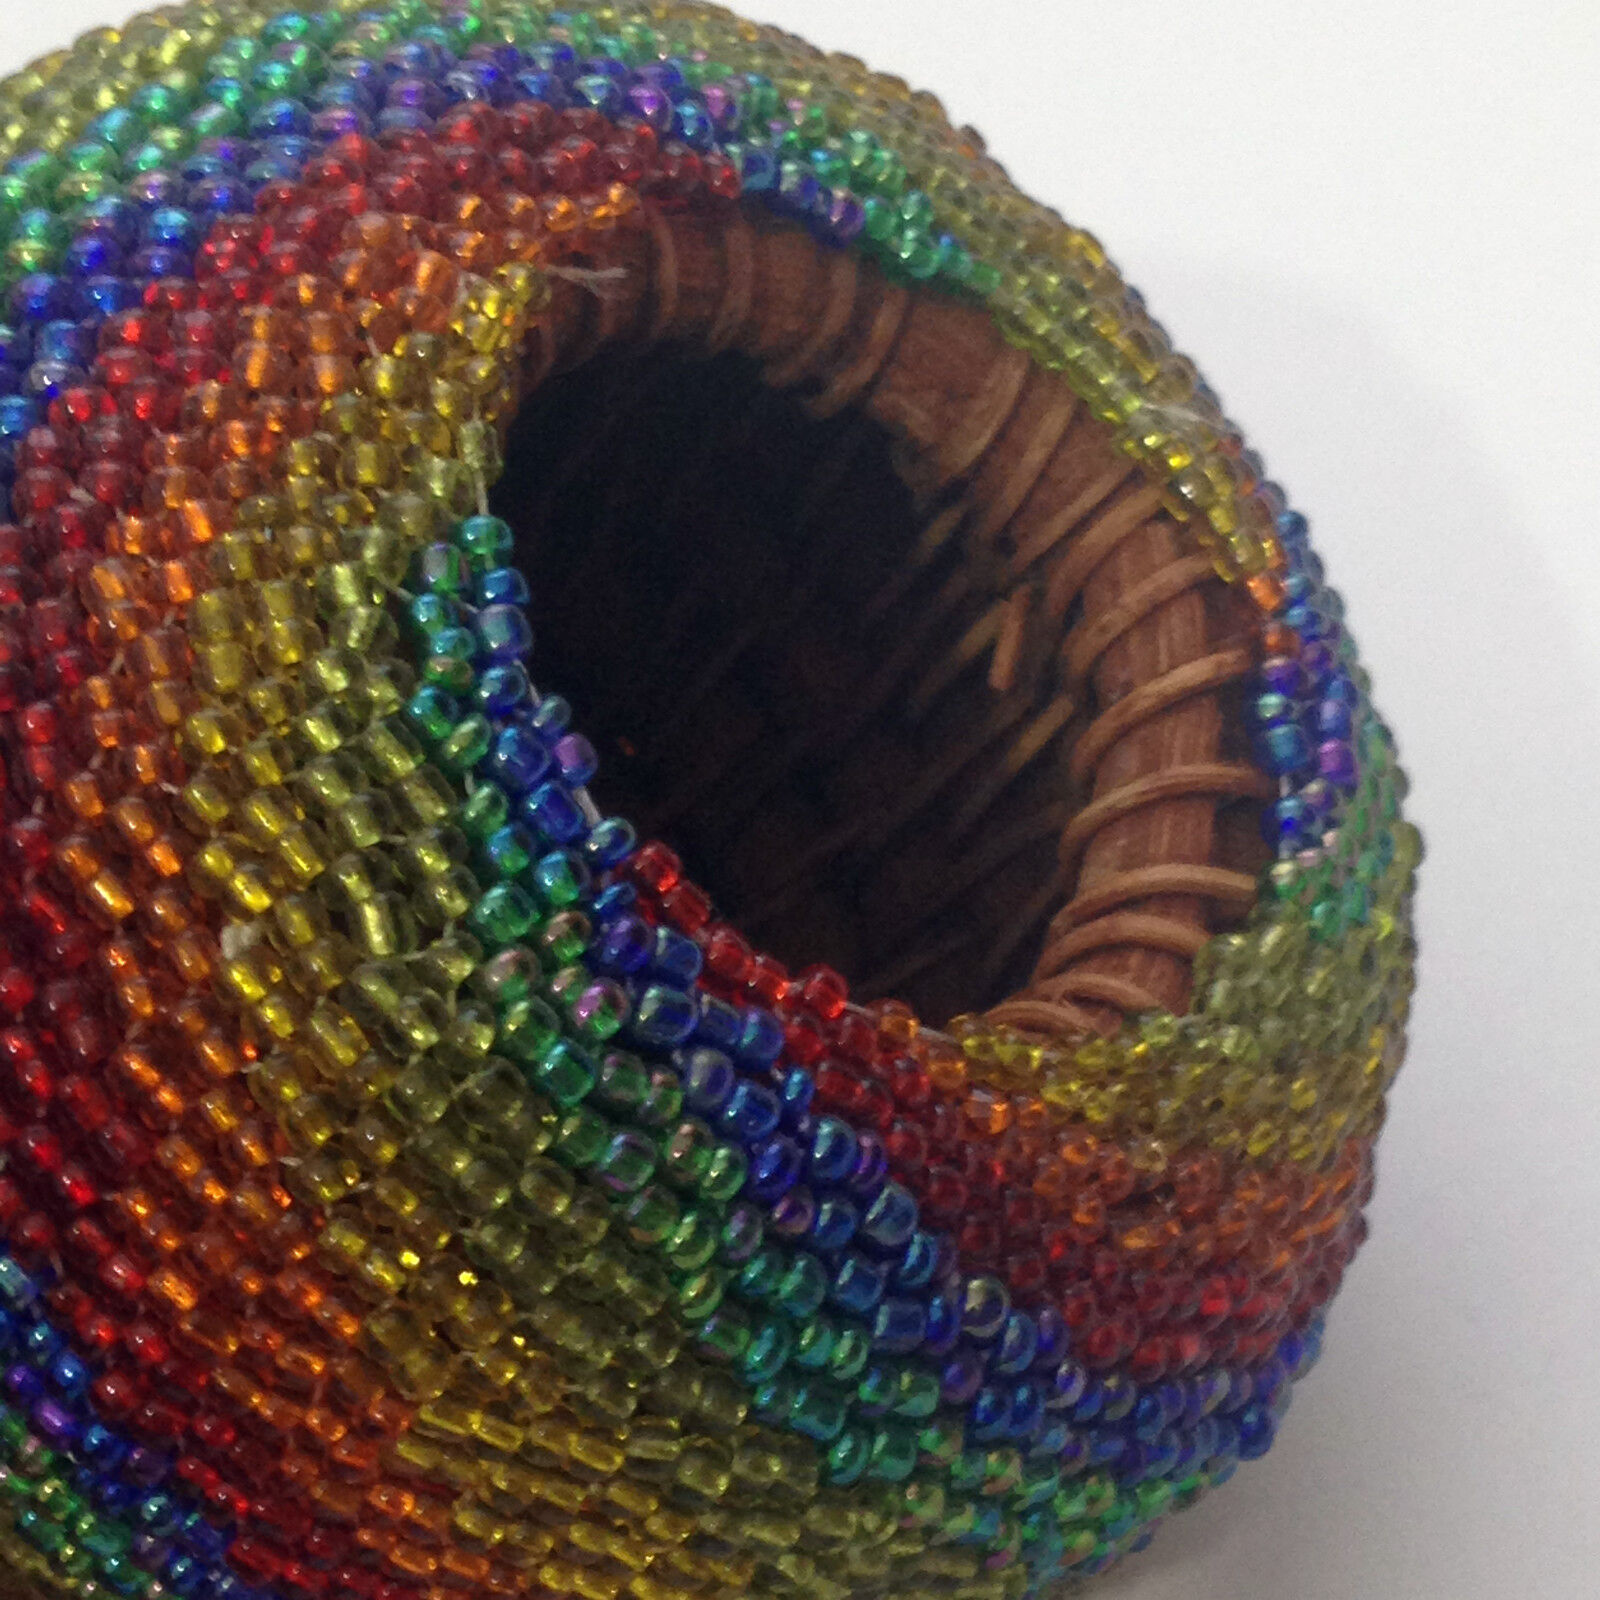 Handmade Beaded Basket : Handmade beaded colorful ball round shape woven small